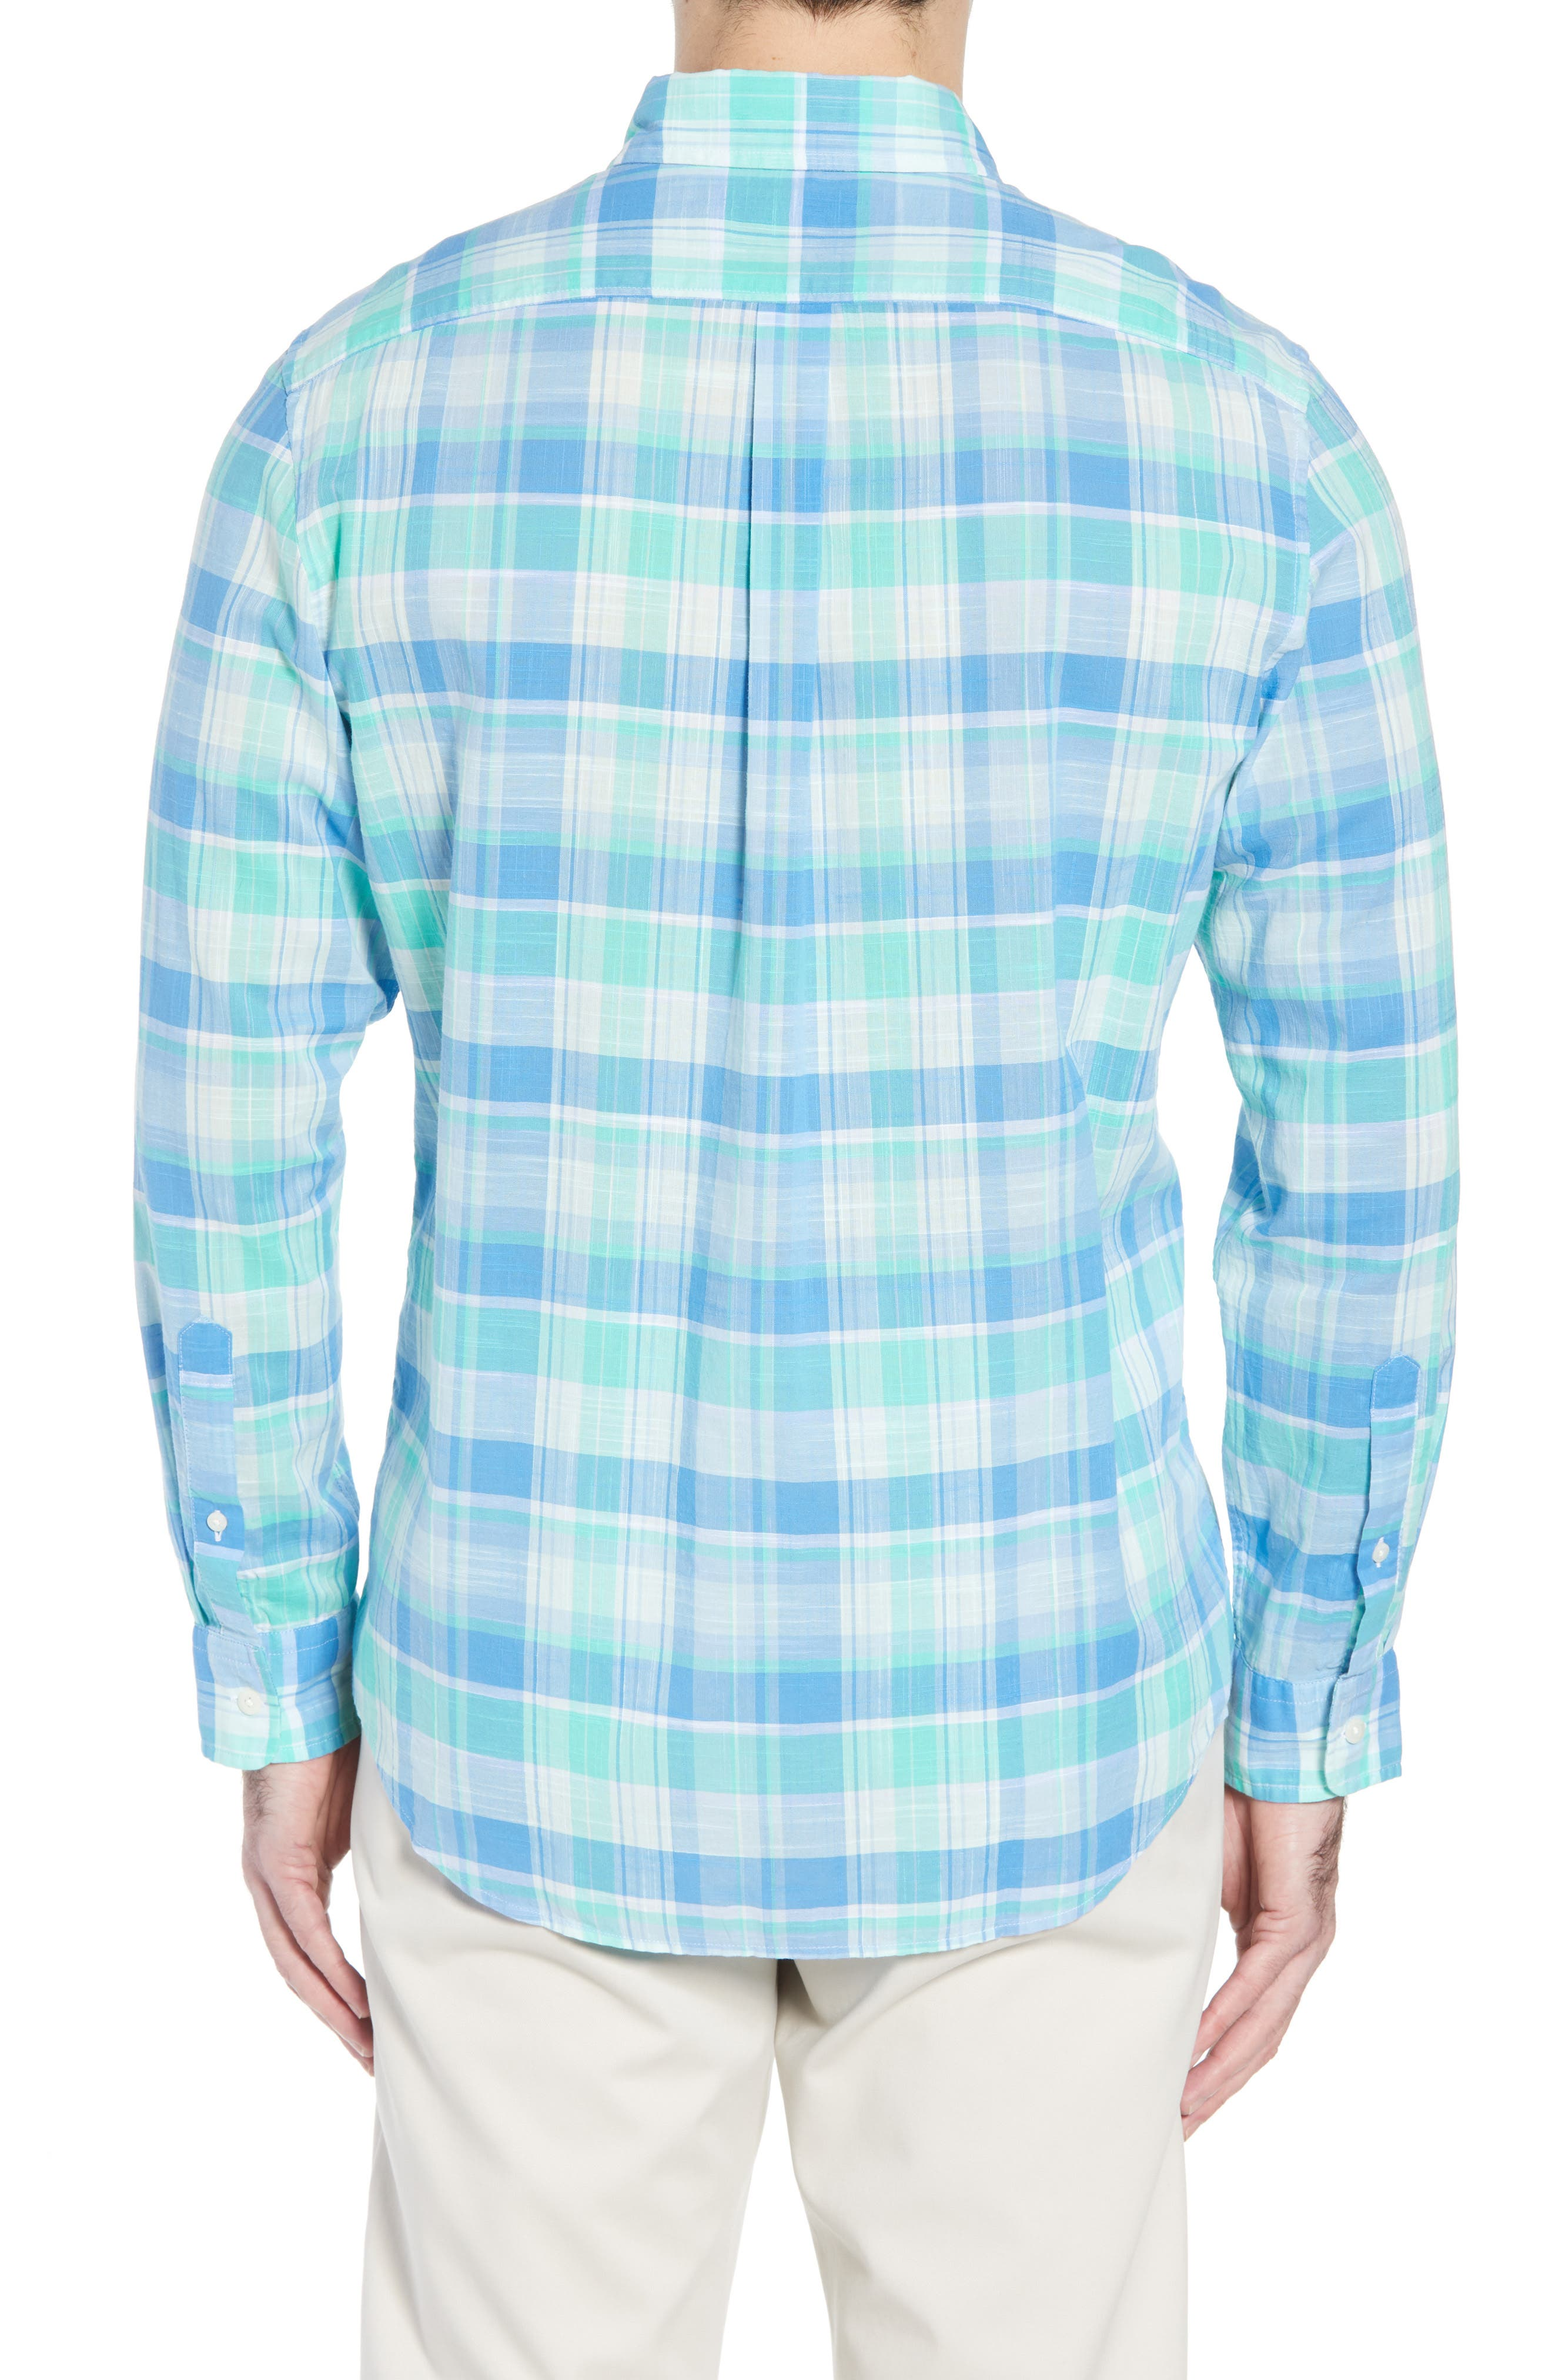 Homer Pond Murray Classic Fit Plaid Sport Shirt,                             Alternate thumbnail 2, color,